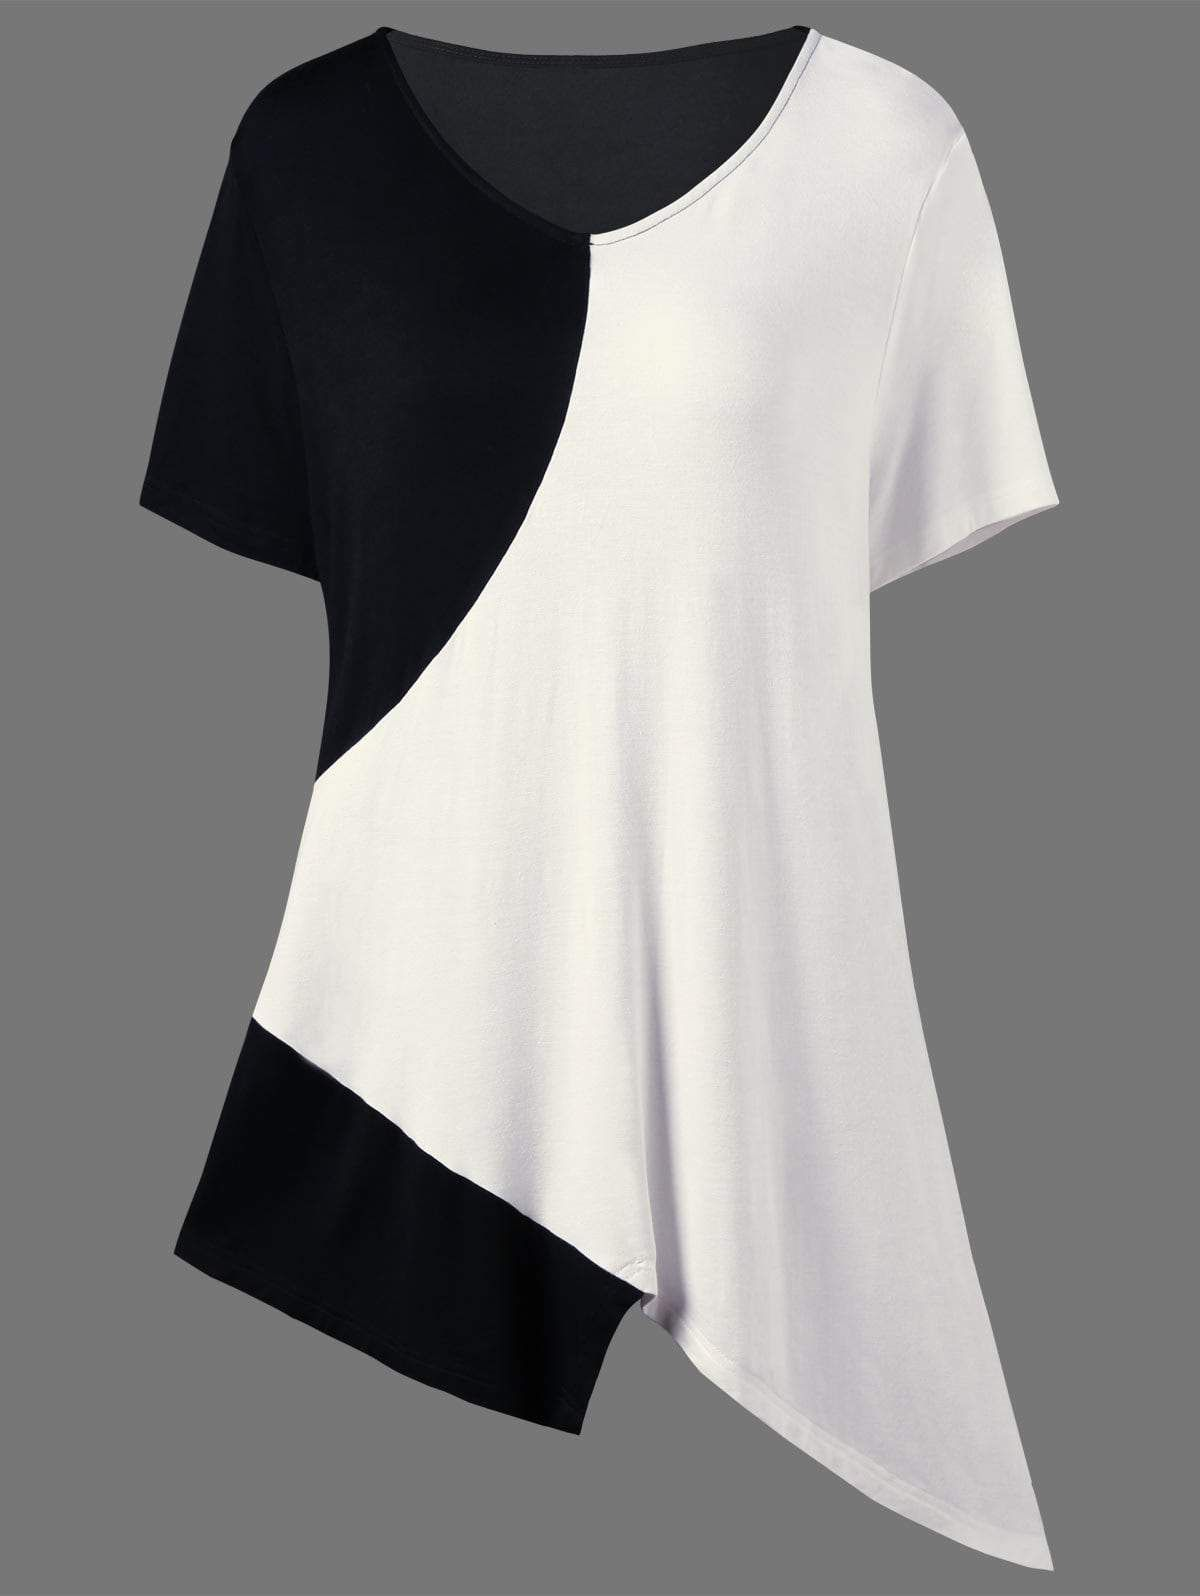 bfeb16faf93183 Asymmetrical Color Block Plus Size Long T-Shirt in 2019 | Products ...